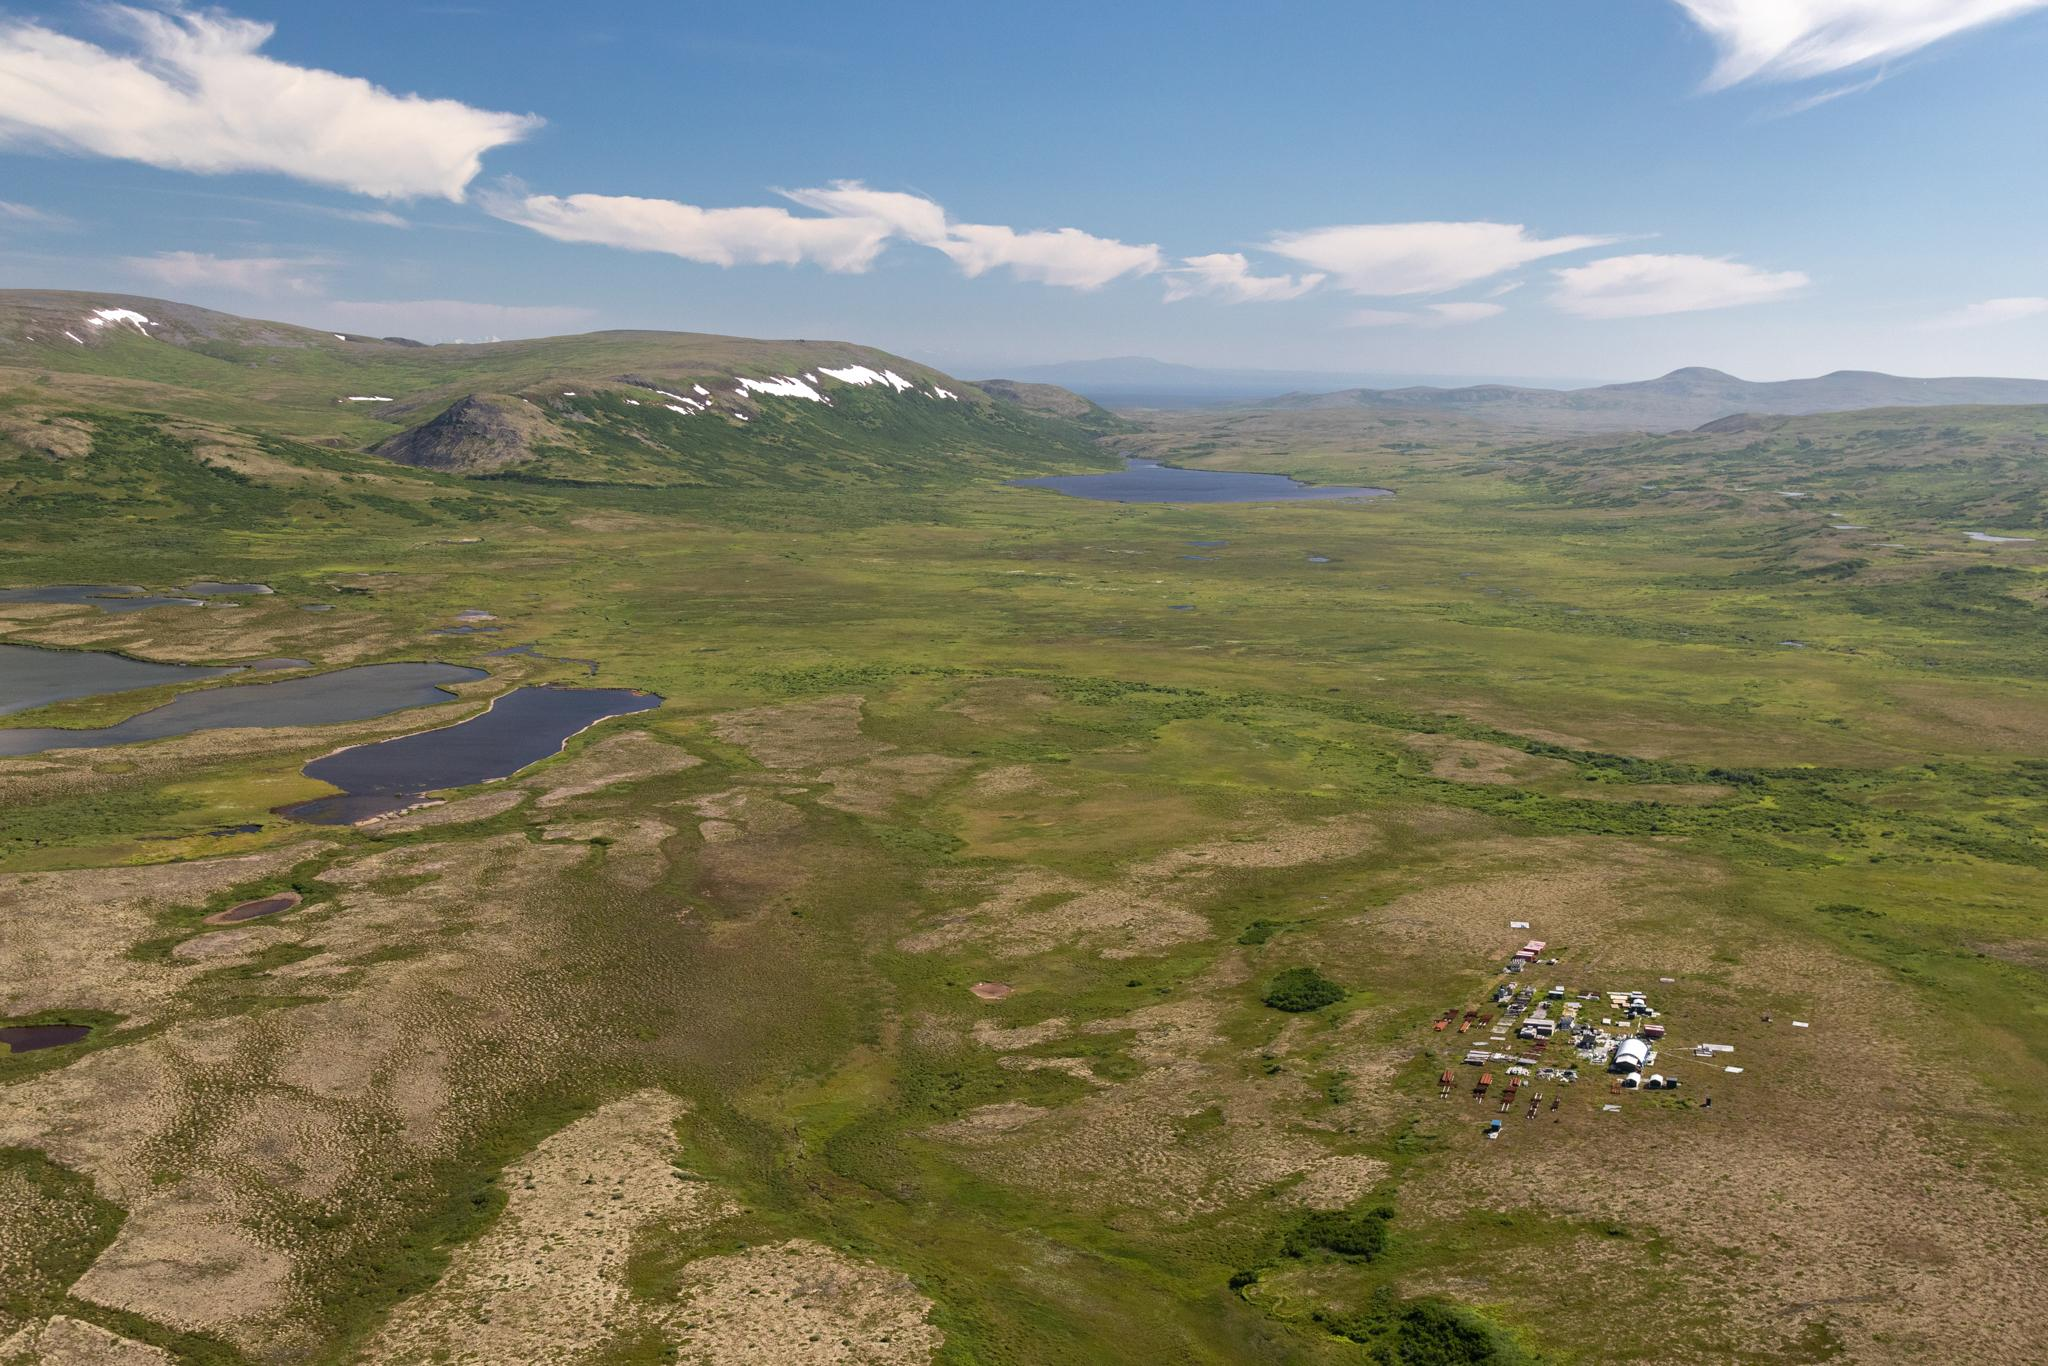 A work camp on the tundra at the site of the proposed Pebble Mine, thought to be one of the world's largest deposits of copper and gold. If built, the mine—an open pit over a mile wide and a third of a mile deep—would employ around 1,000 people and generate an estimated $300 billion. While a few nearby communities, including the village of Iliamna, support the project for the economic boost it could bring to the region, the majority of Bristol Bay residents are opposed to it.